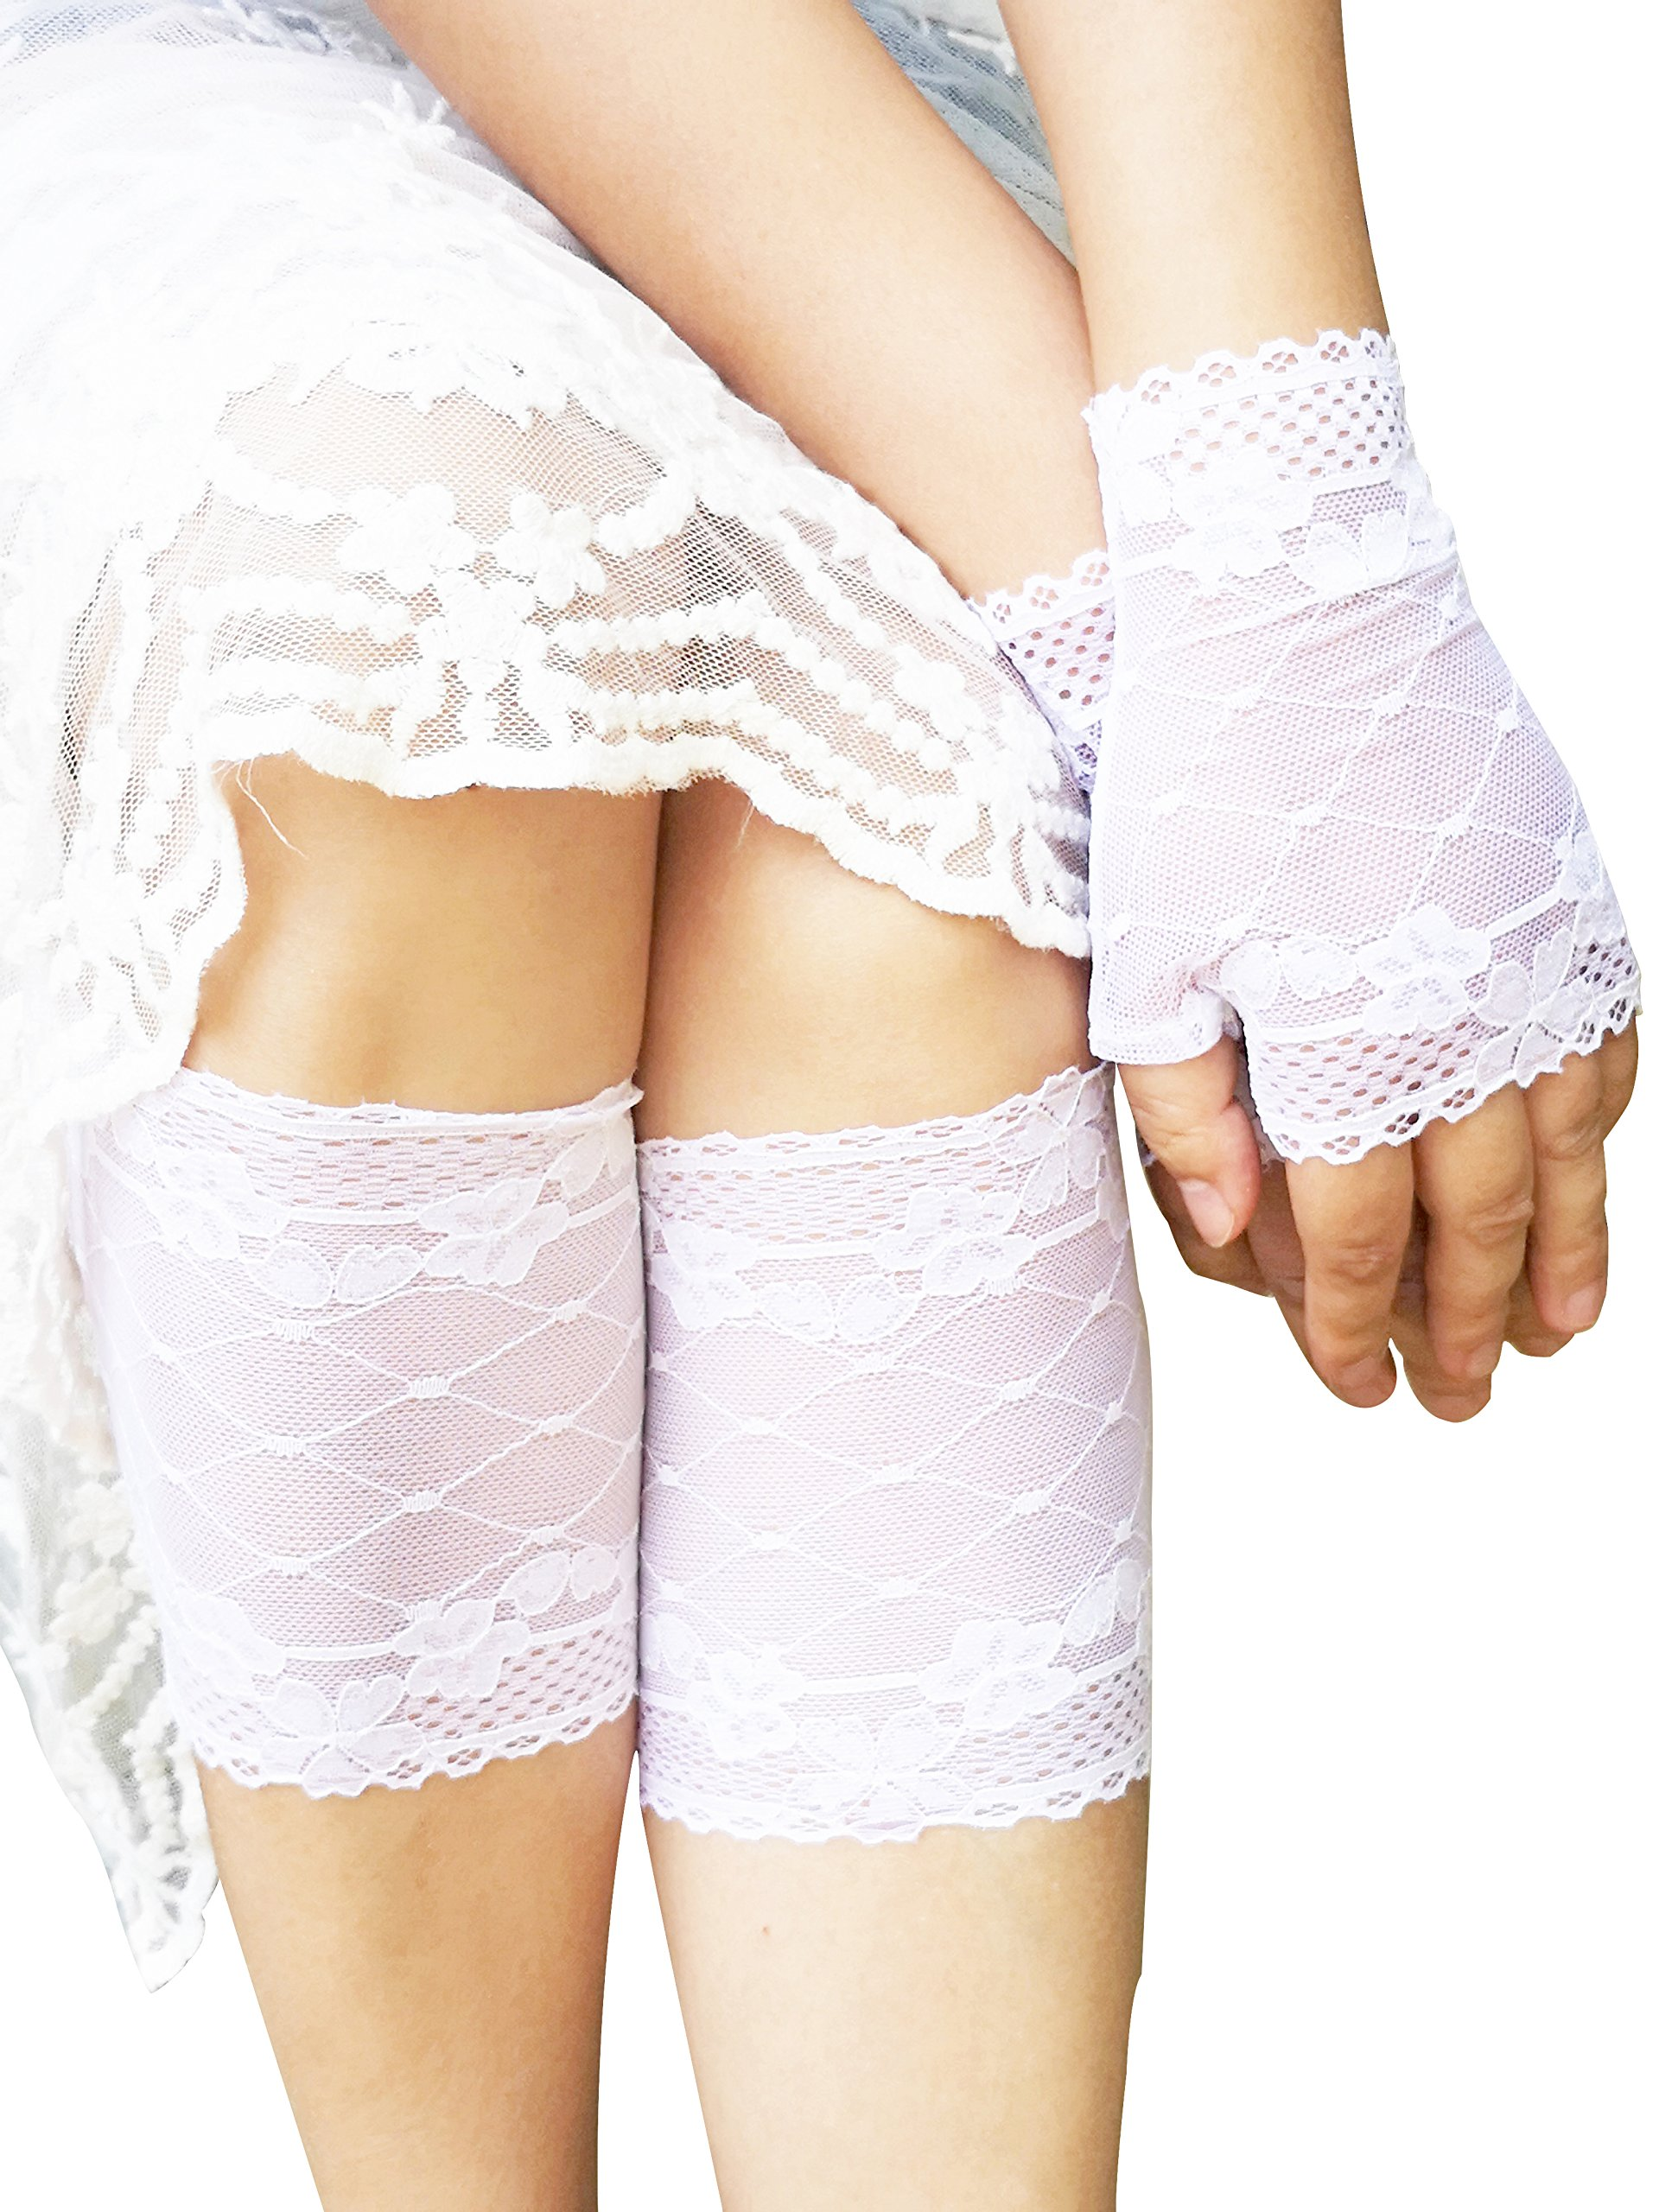 YuRong Lace Boot Cuffs Toppers Lace Socks and Lace Gloves E01 (White)